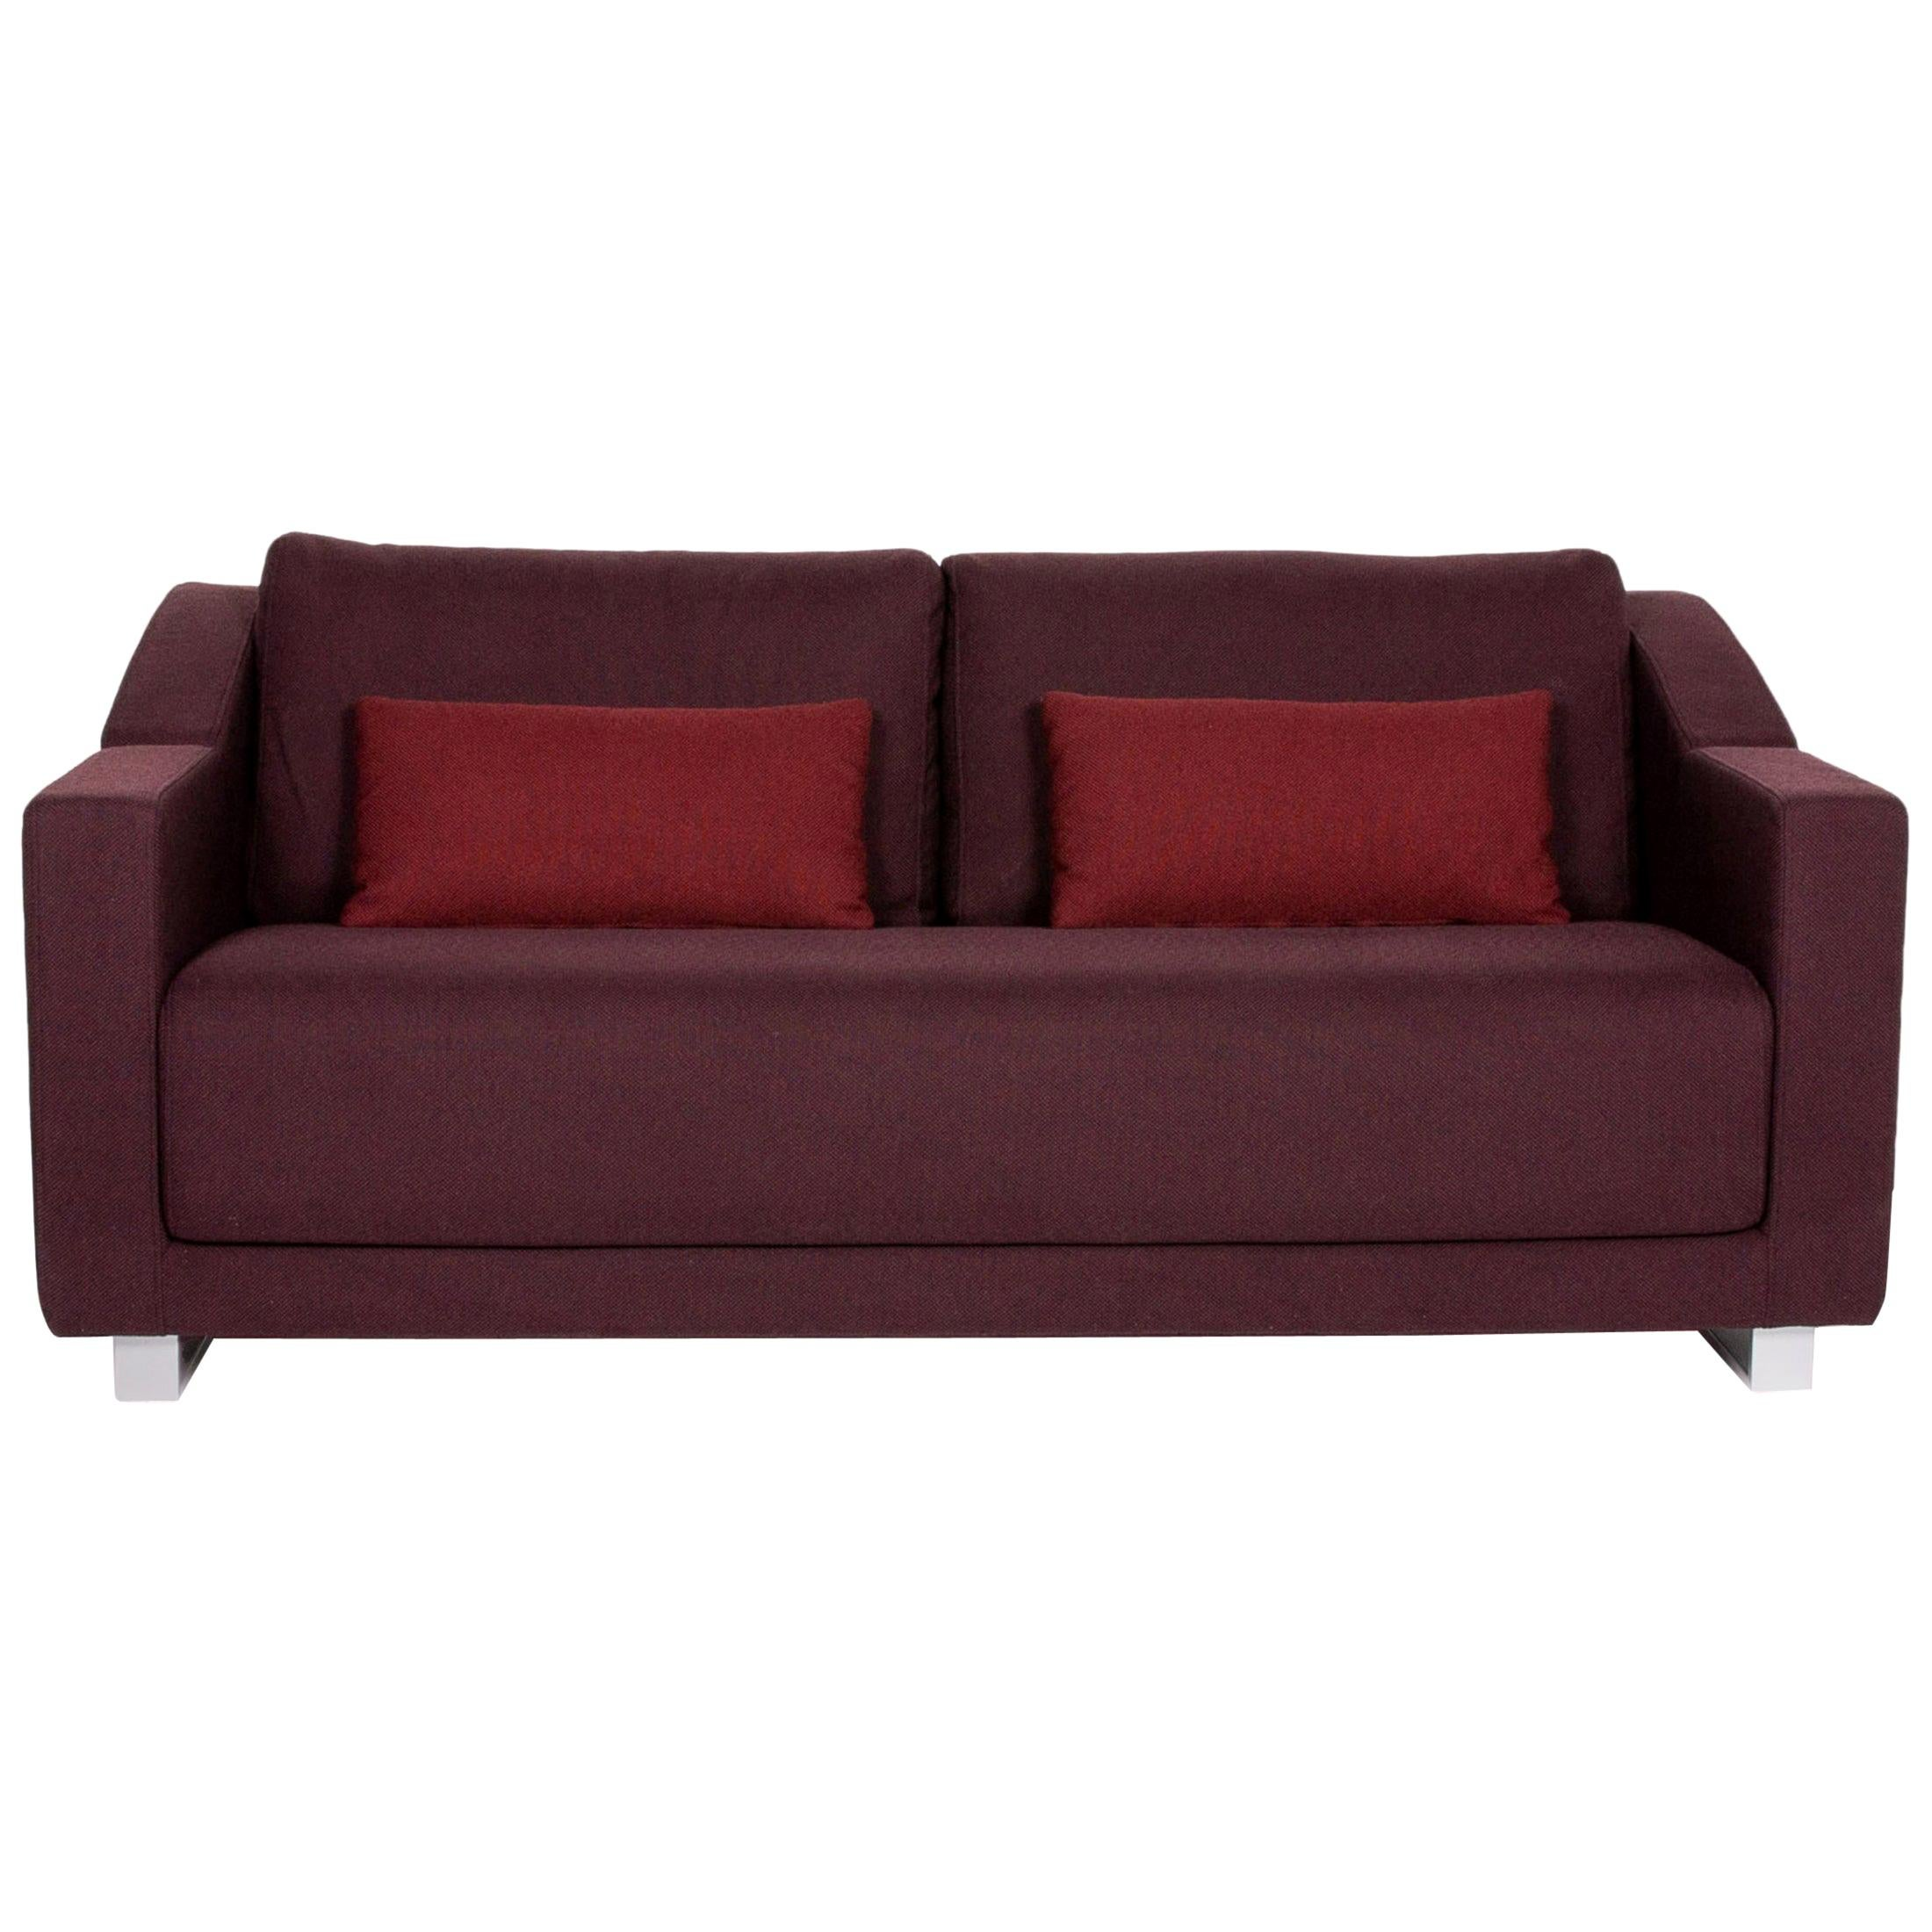 Rolf Benz 350 Fabric Sofa Aubergine Violet Three-Seat Couch